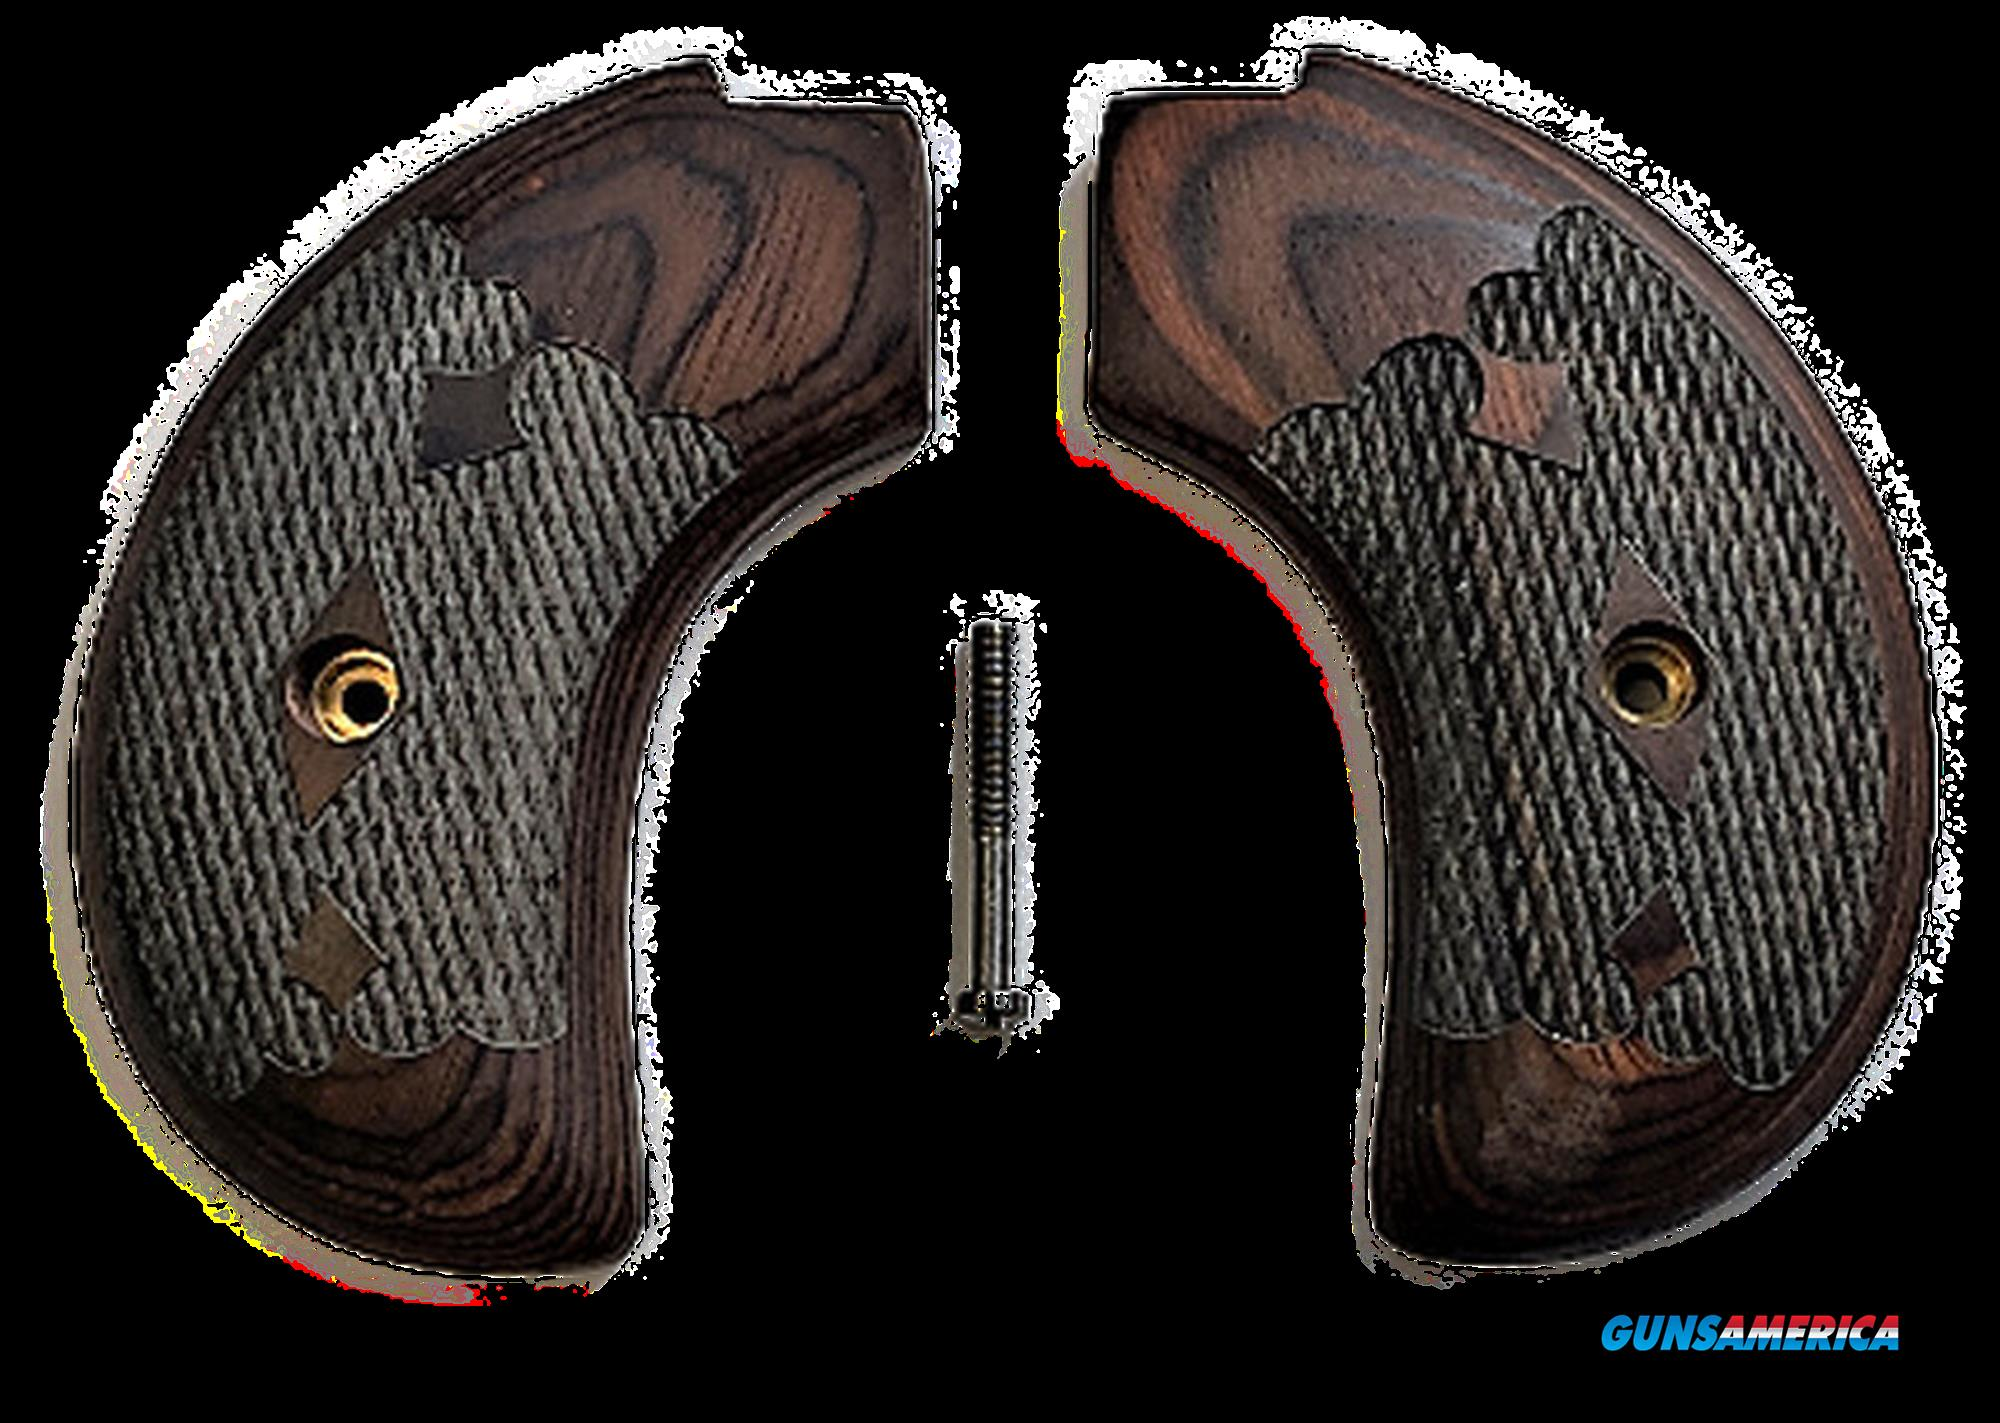 Premium Rosewood Bird's Head Version Heritage Arms Rough Rider 6 & 9 Shot Grips (.22 &.22 Mag)